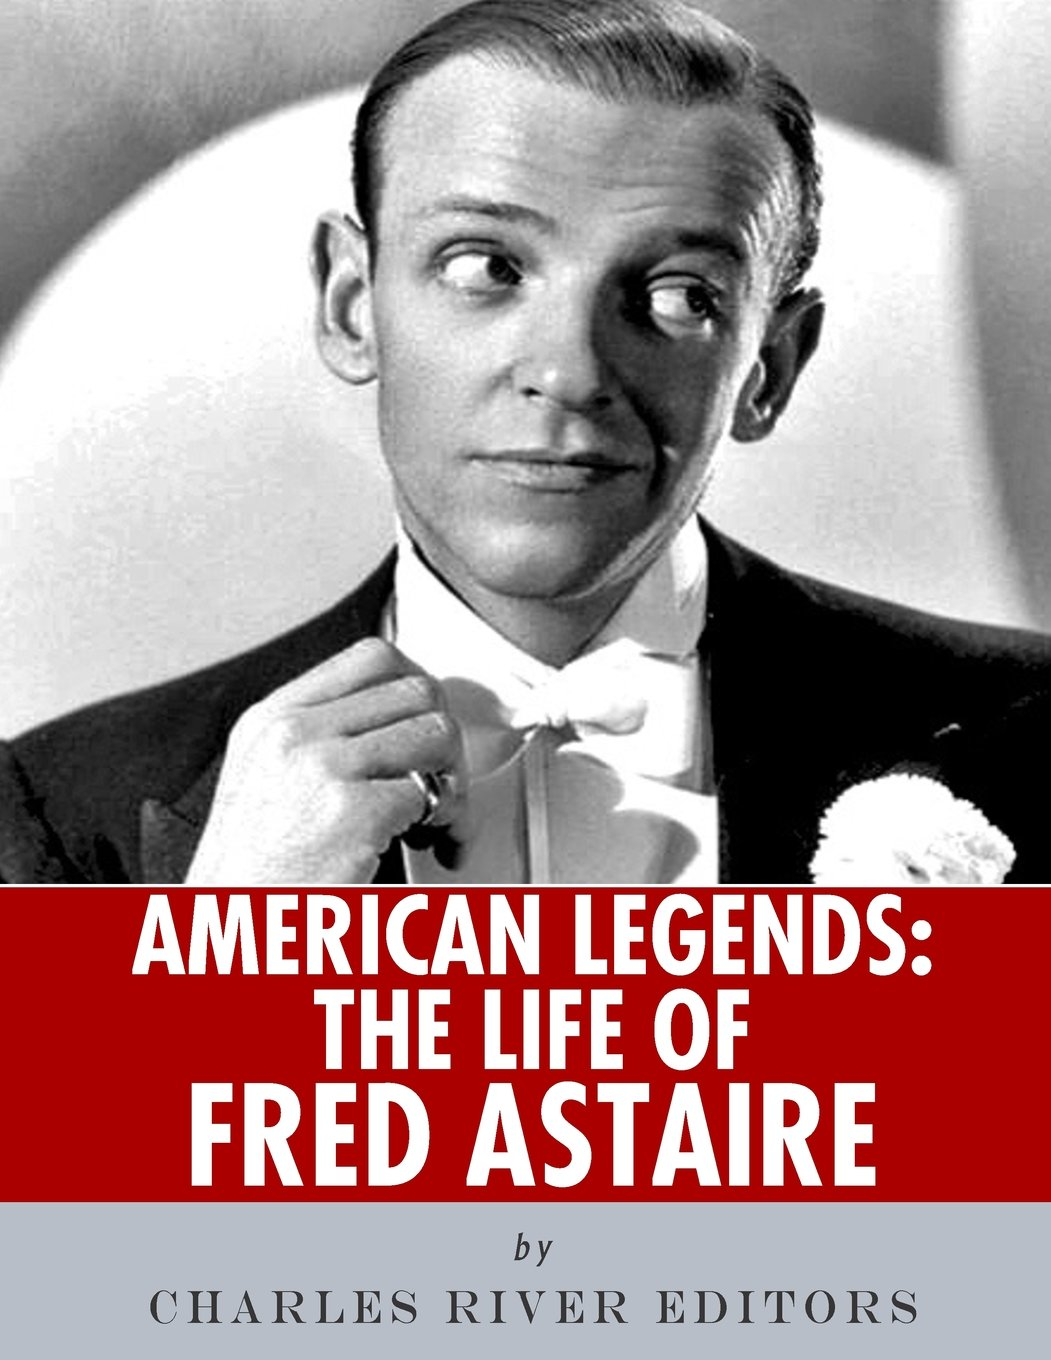 American Legends: The Life of Fred Astaire PDF